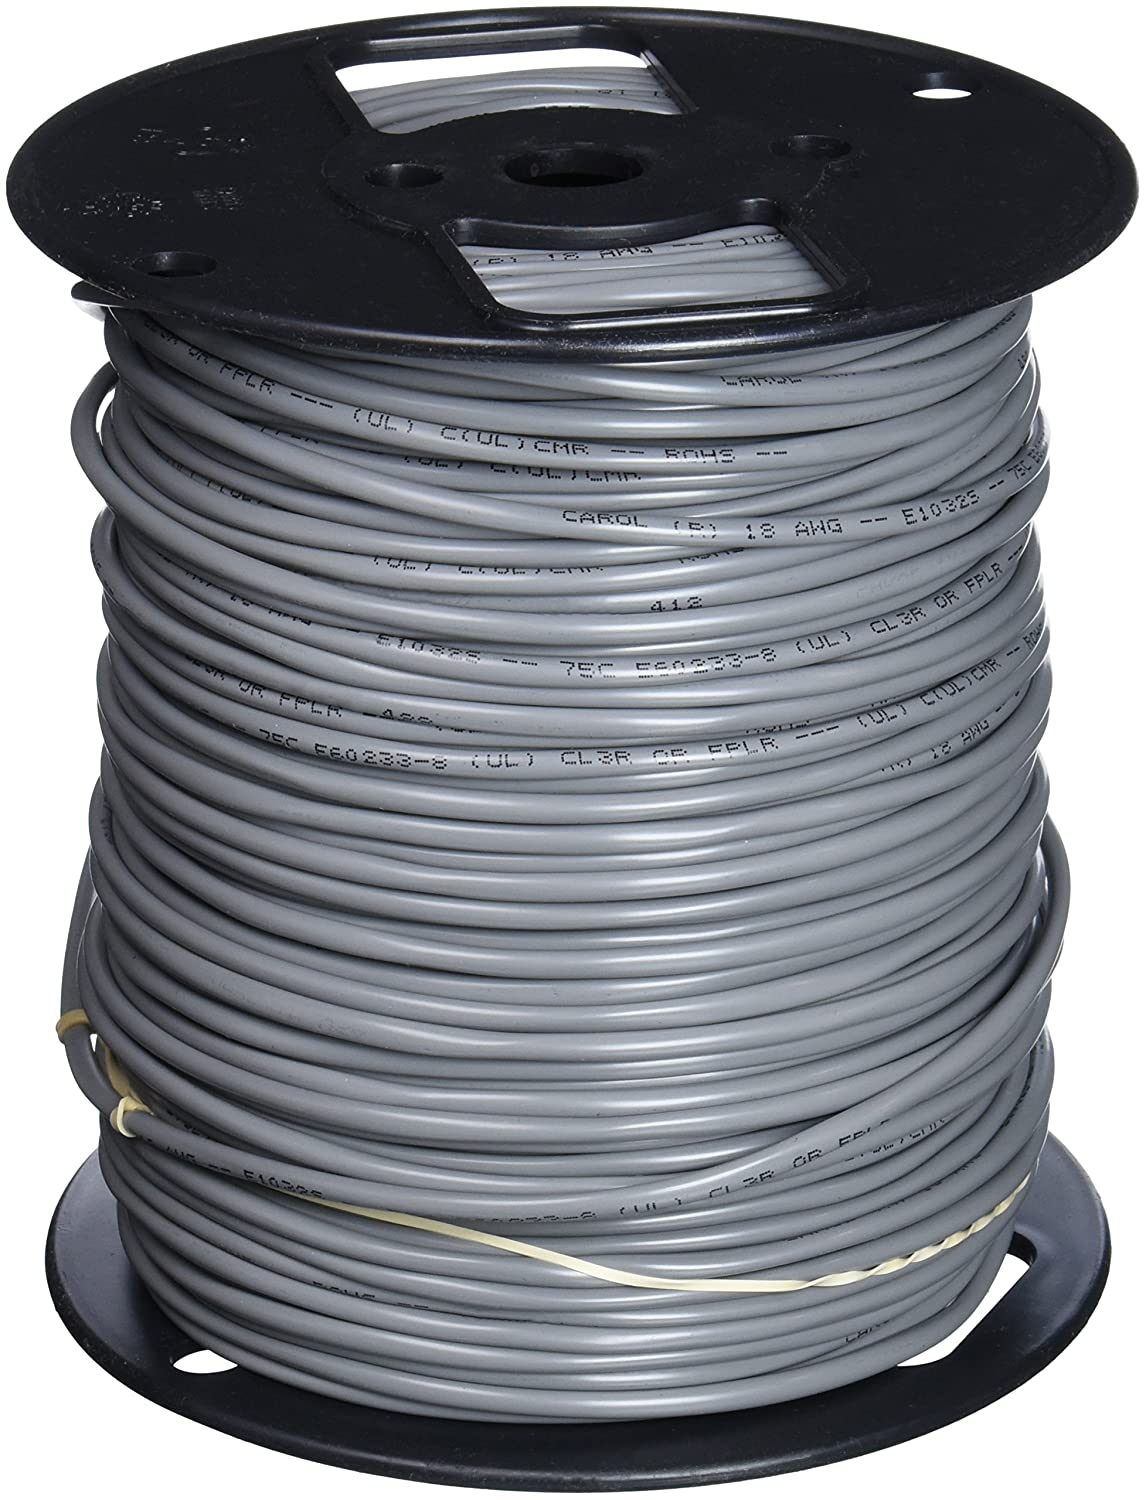 CAROL Data// Communications Cable C6348A.18.10 2 Wire,Gray 100ft